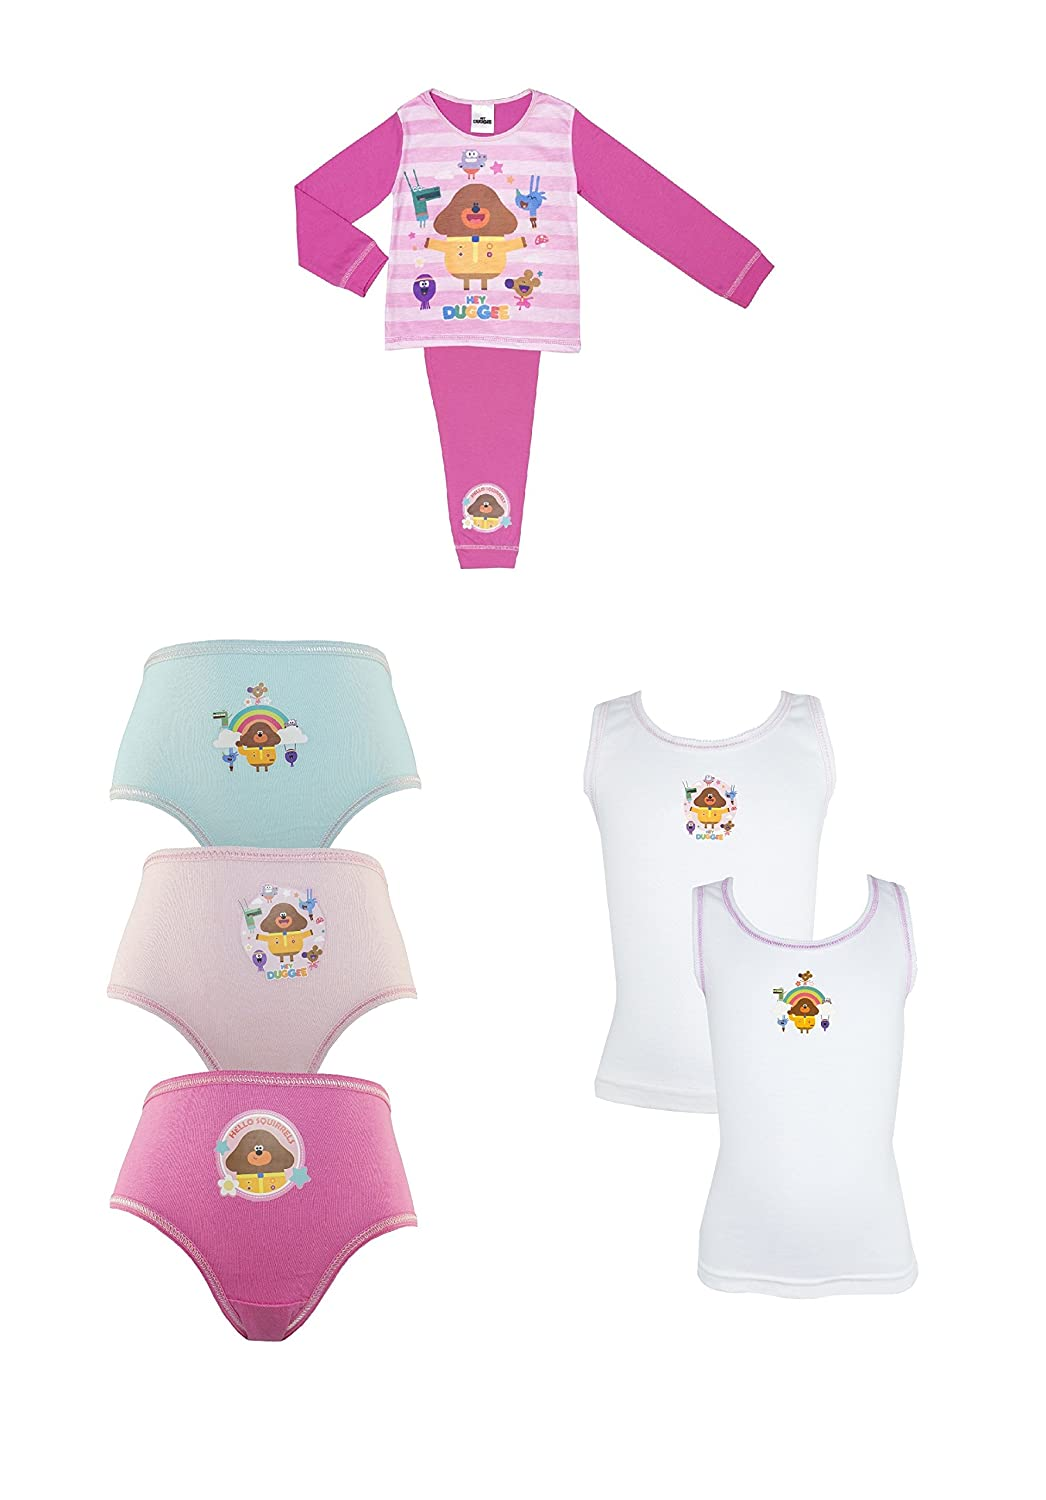 Cartoon Character Products Hey Duggee Girls Pyjama and Pants and Vest Underwear Set 18 Months - 5 Years